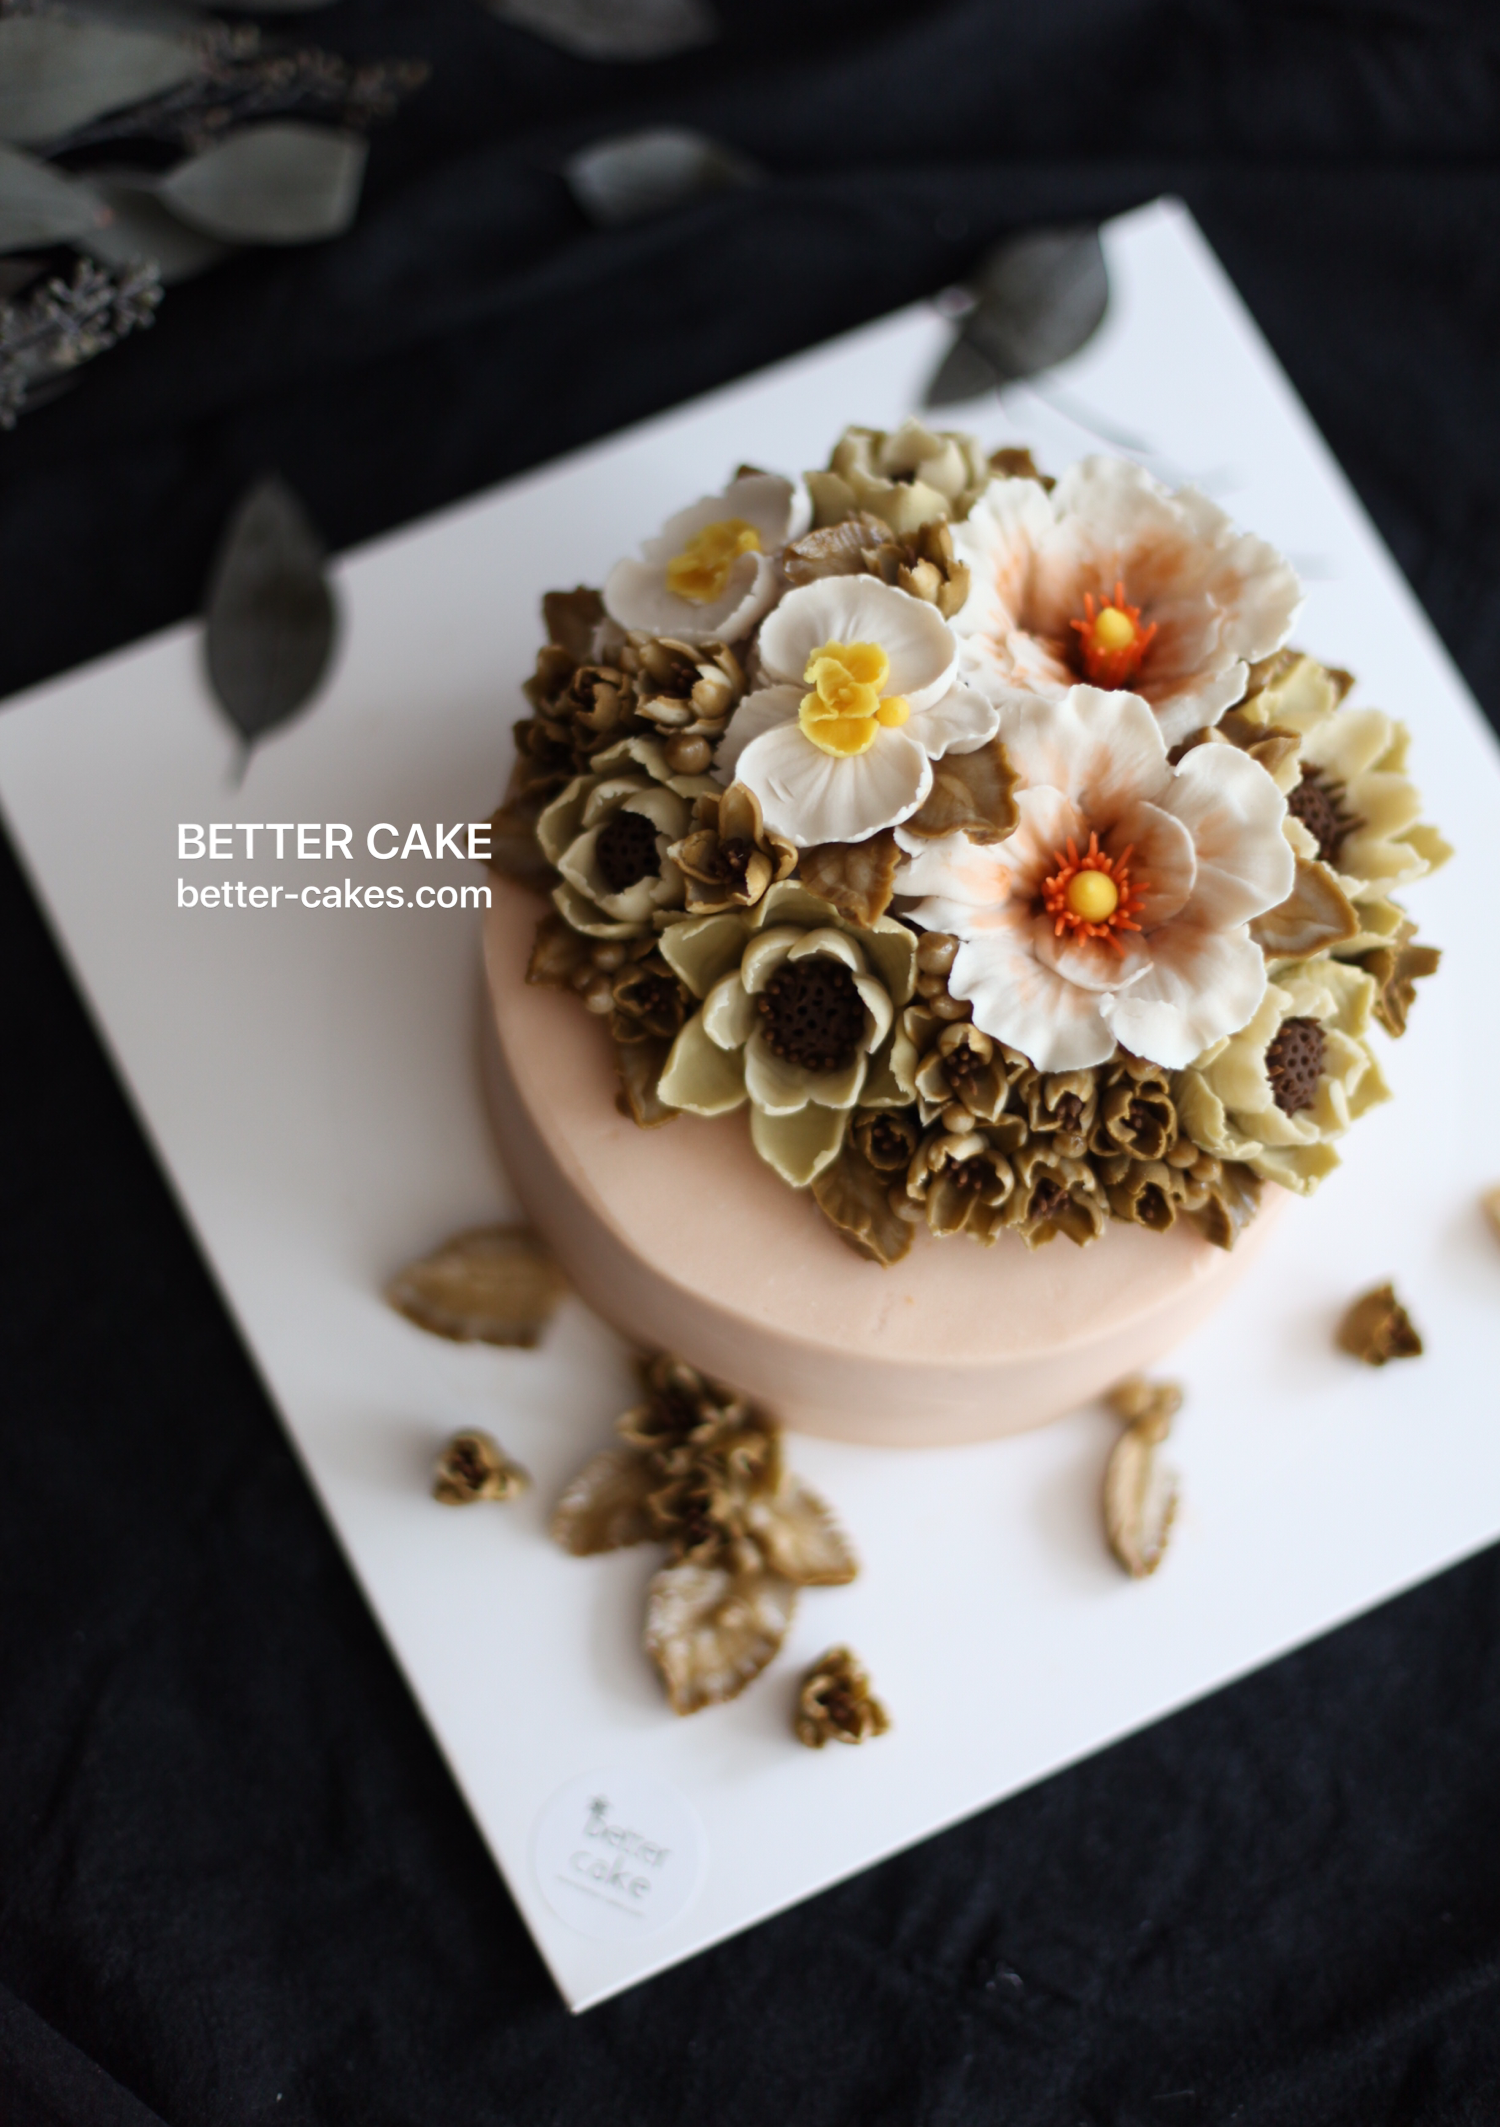 Done by my students from Japan   Beanpaste & Rice cake  (베러 전문가반/Professional class) www.better-cakes.com Any inquiries about BETTER CLASS, Mailbettercakes@naver.com Linebetter_cake FacebookBetter Cake Kakaotalkleesumin222  #buttercream#cake#베이킹#baking#bettercake#like#버터크림케익#베러케이크 cupcake#flower#꽃#sweet#플라워케익#koreabuttercream#wilton#앙금플라워#디저트#buttercreamcake#dessert#버터크림플라워케익#follow#beanpaste#koreancake#beautiful#윌튼#instacake#꽃스타그램#컵케익#instafood#flowercake